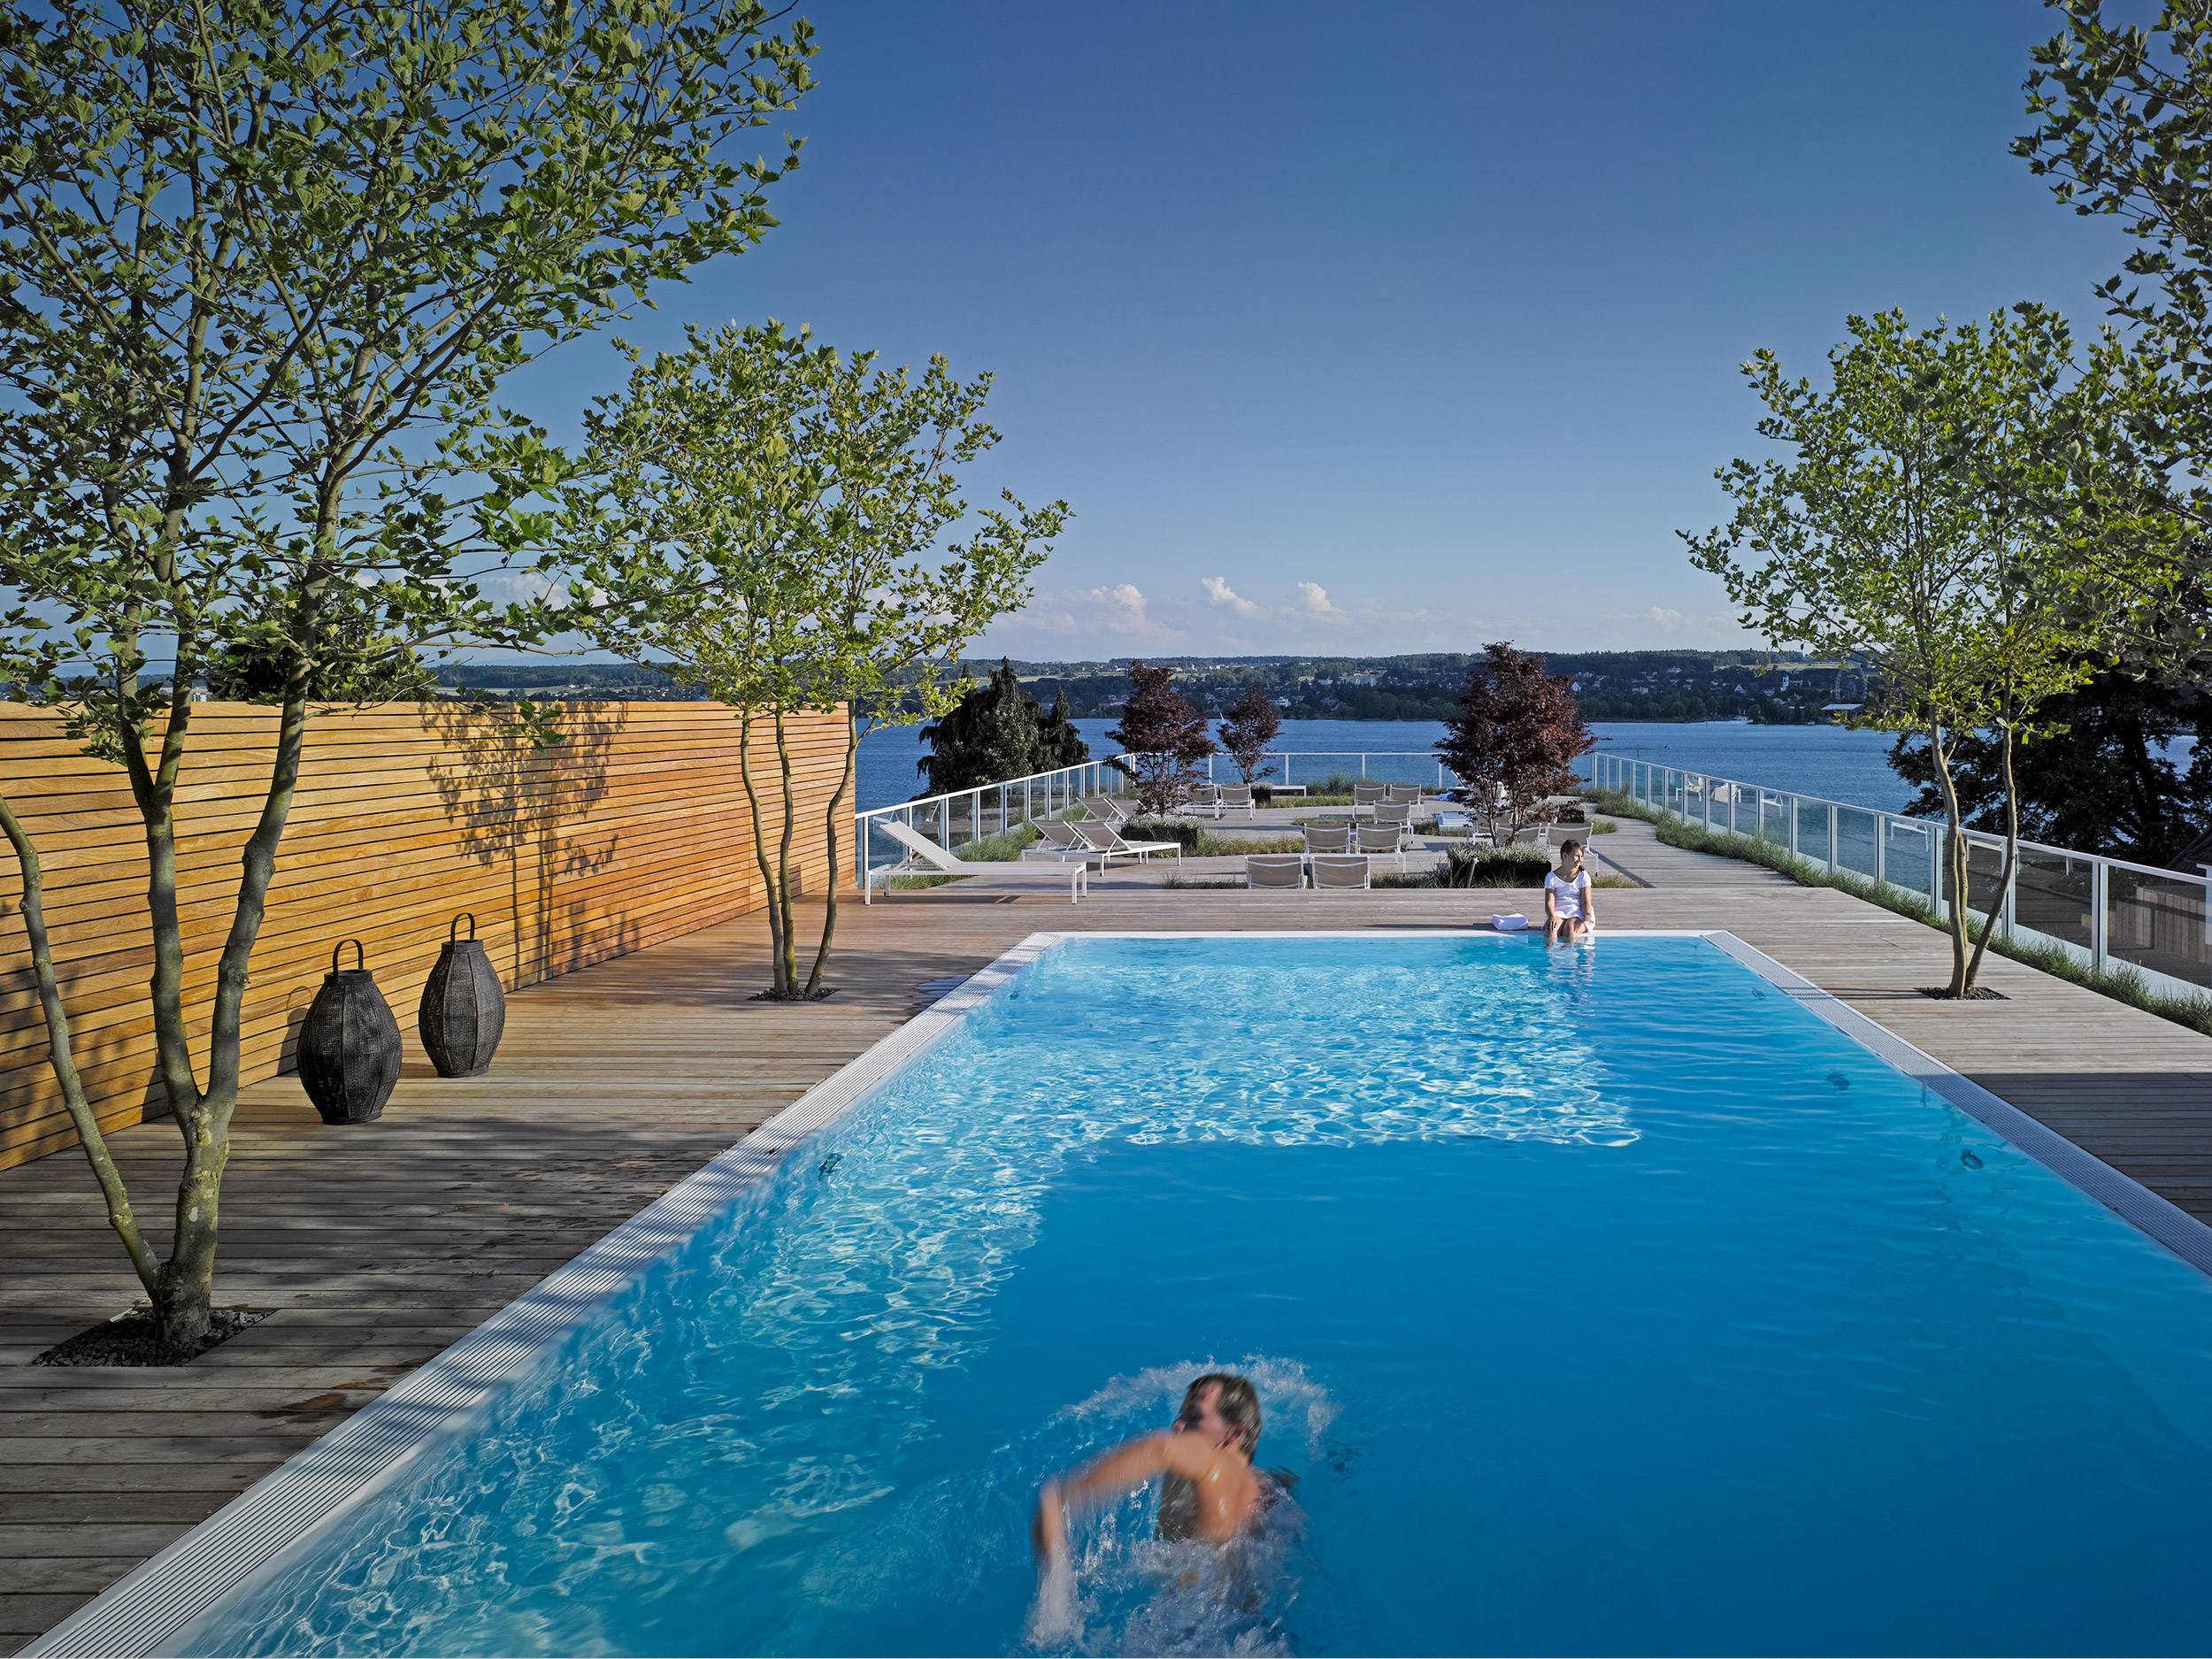 Pooldeck Riva Das Hotel Am Bodensee